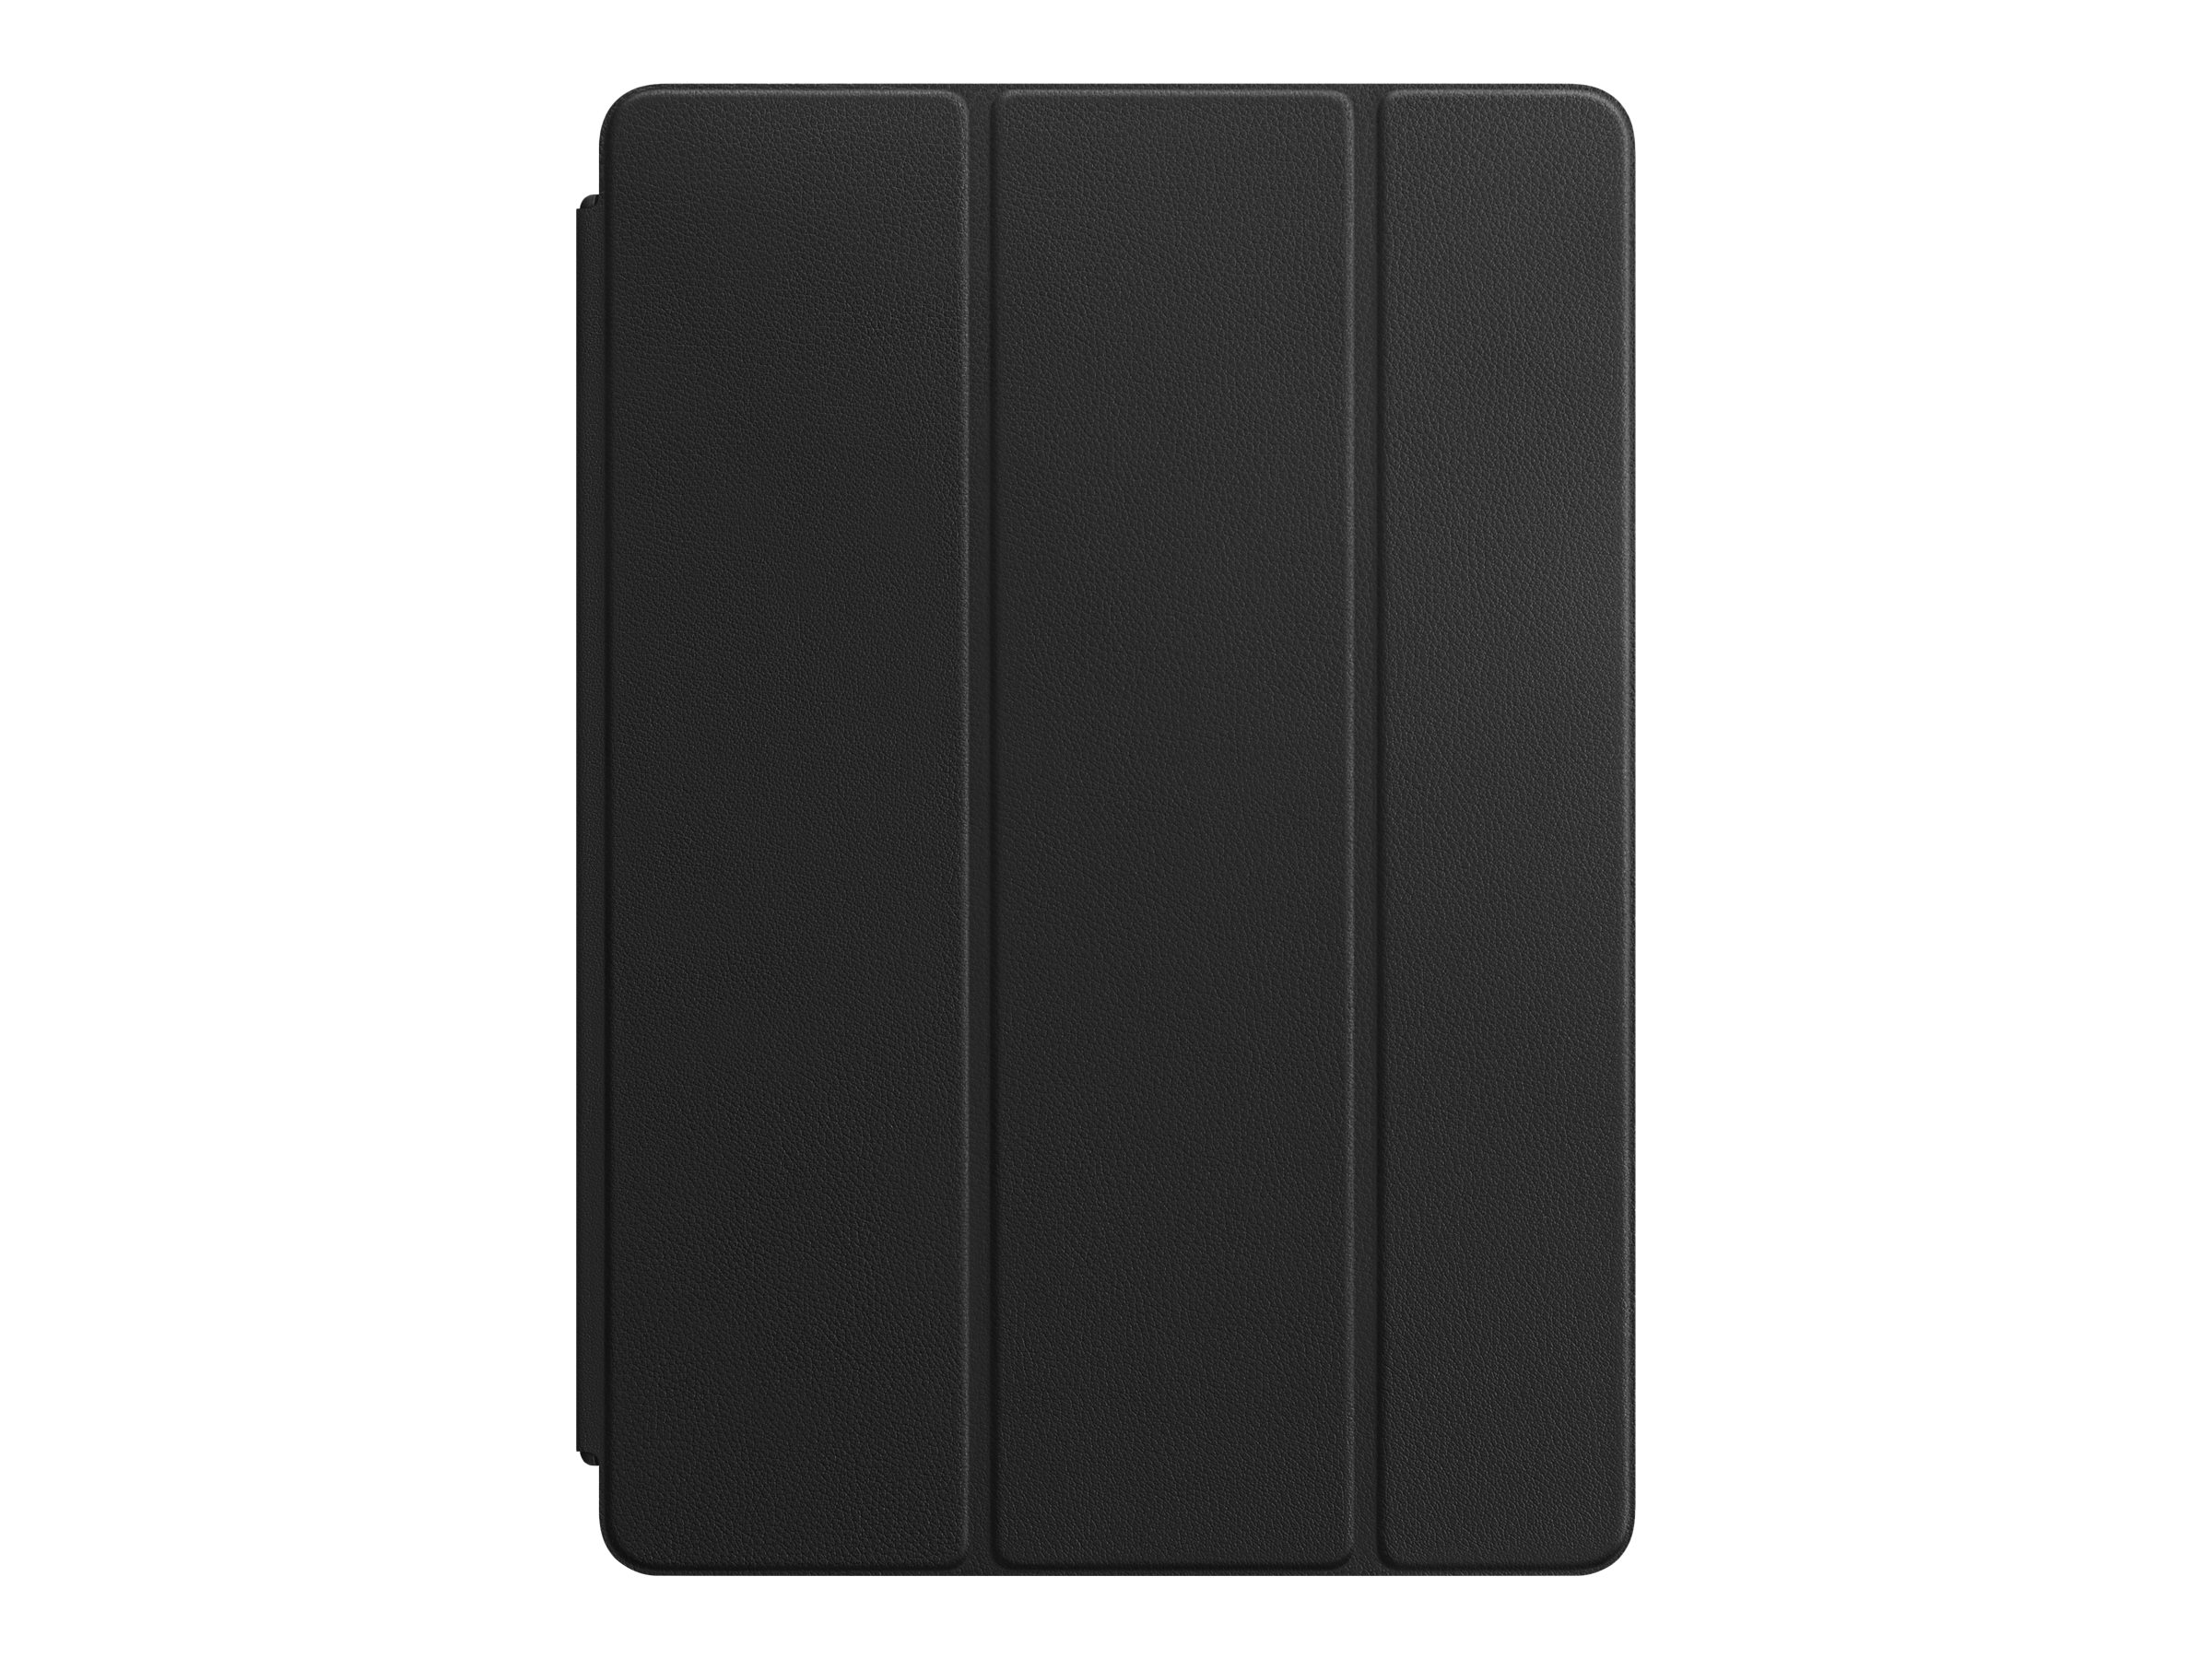 Apple Leather Smart Cover for 10.5 iPad Pro, Black, MPUD2ZM/A